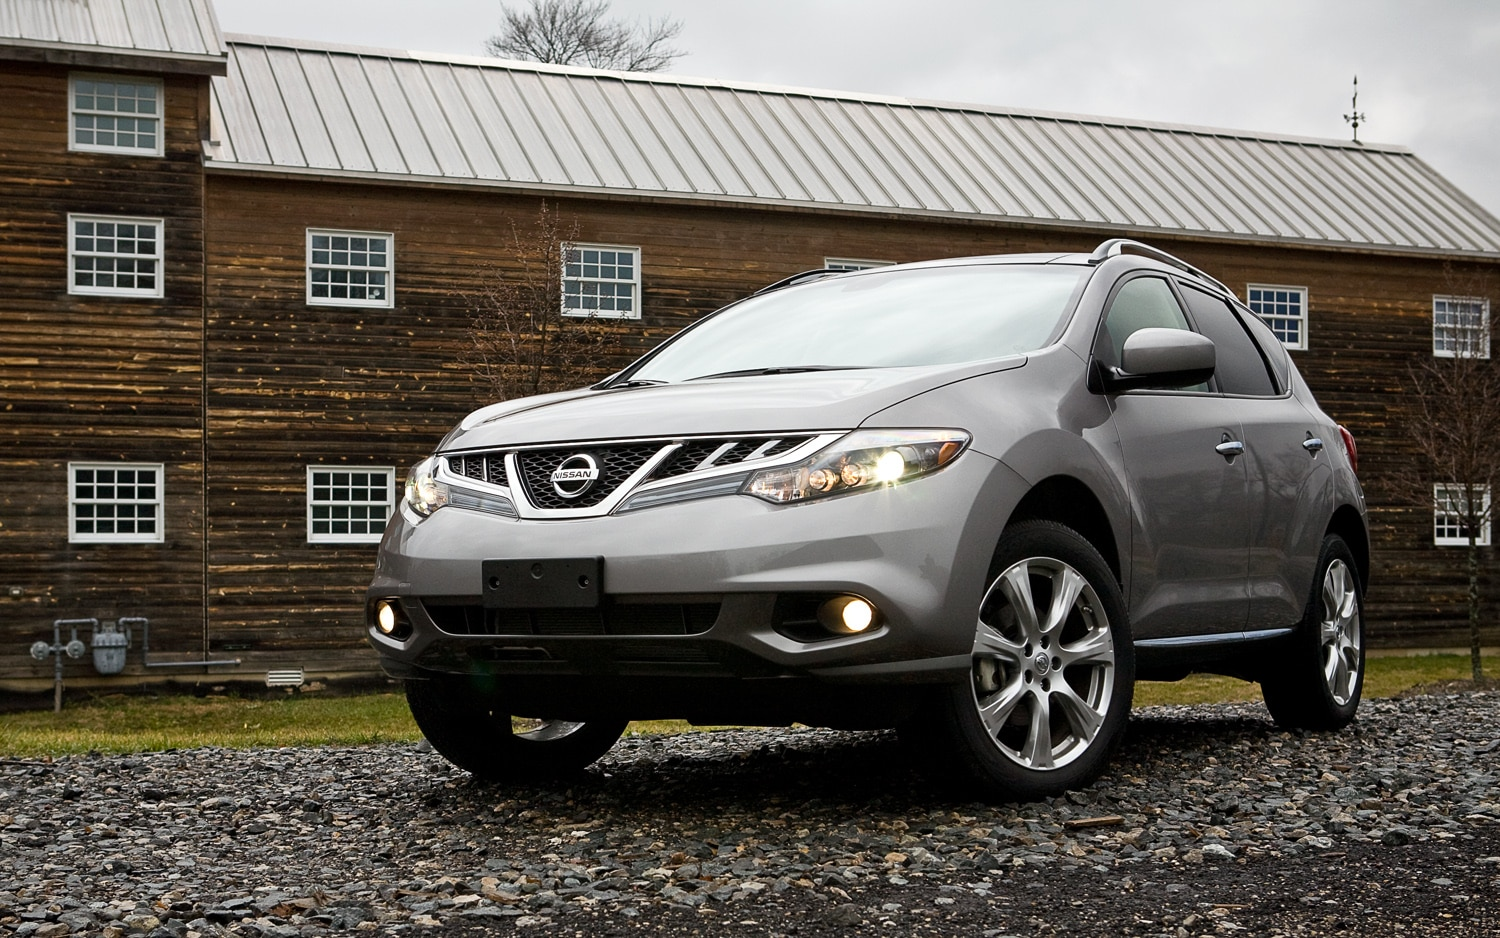 2012 Nissan Murano Le Awd Editors Notebook Automobile